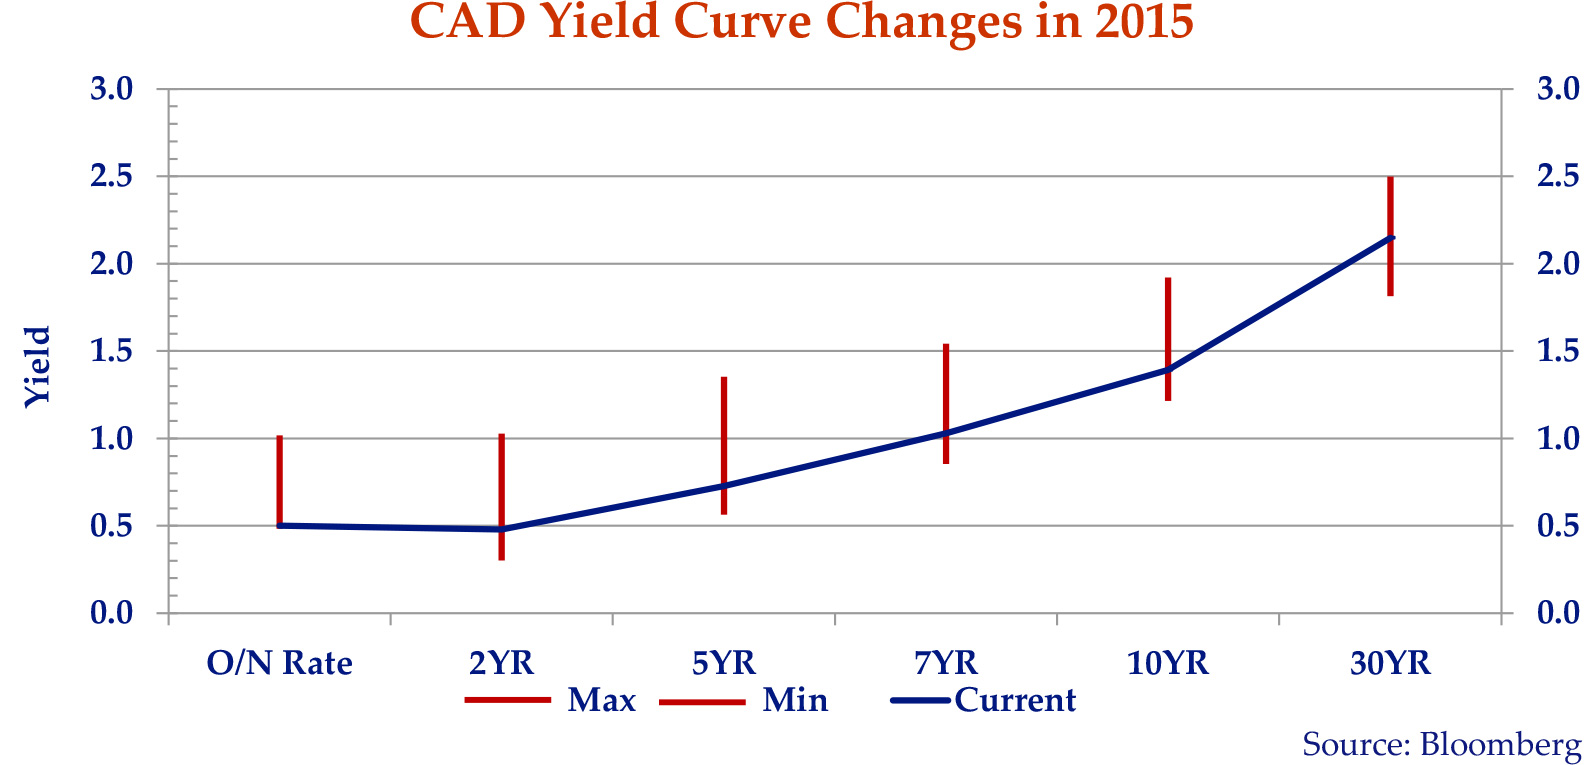 graph showing the Canadian yield curve changes of 2015.